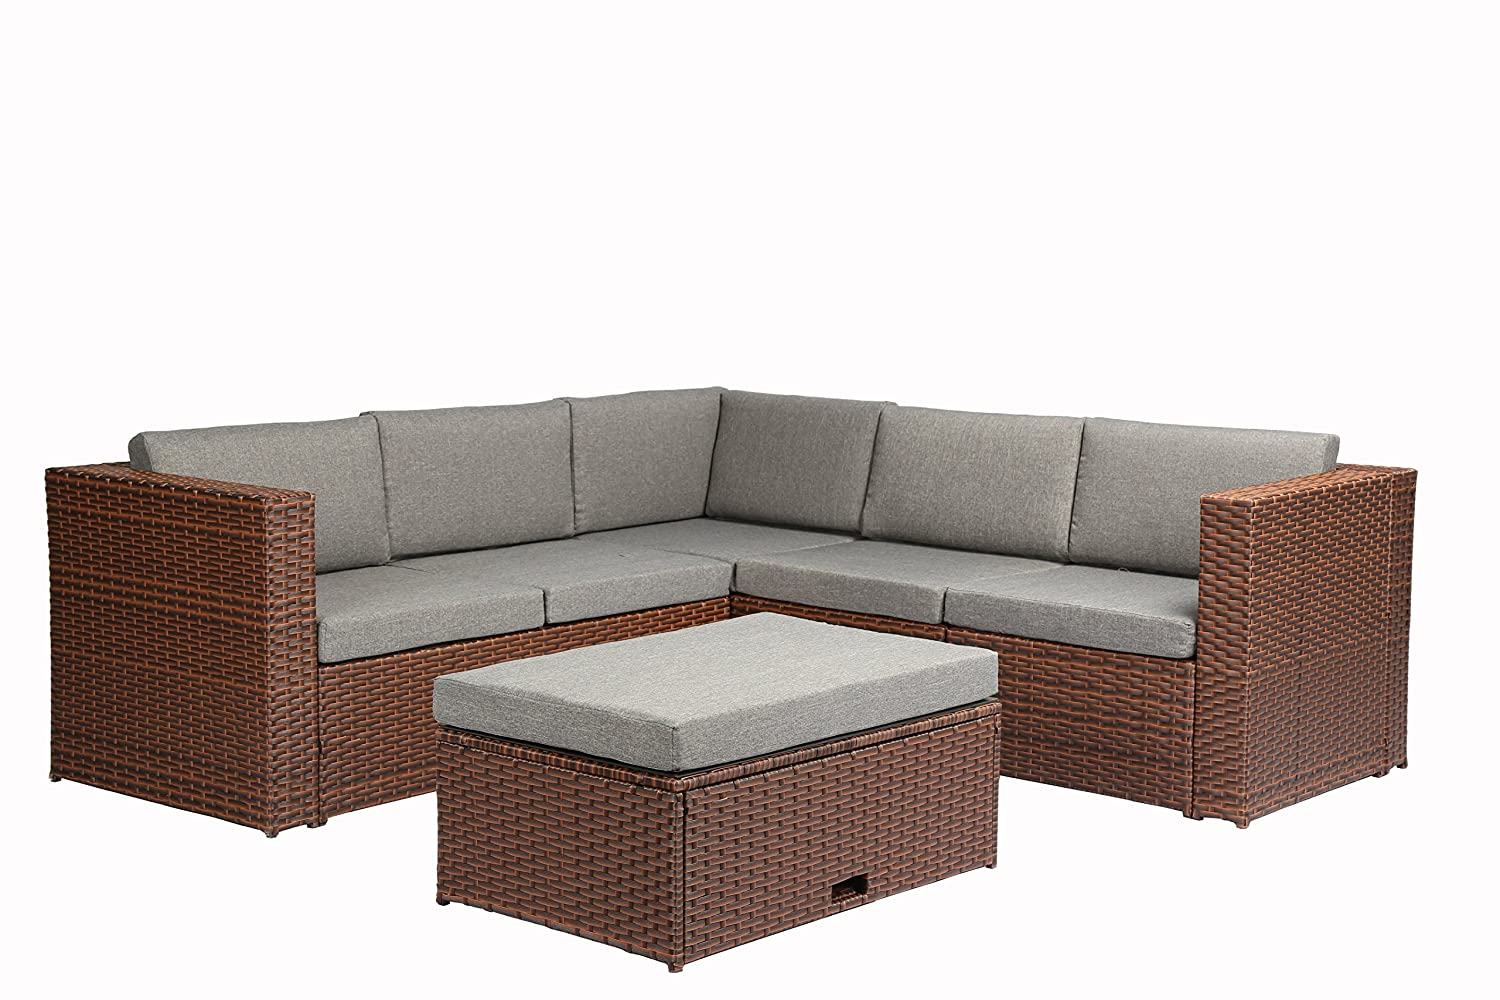 Amazon Com Baner Garden K35 Br 4 Pieces Outdoor Furniture Complete